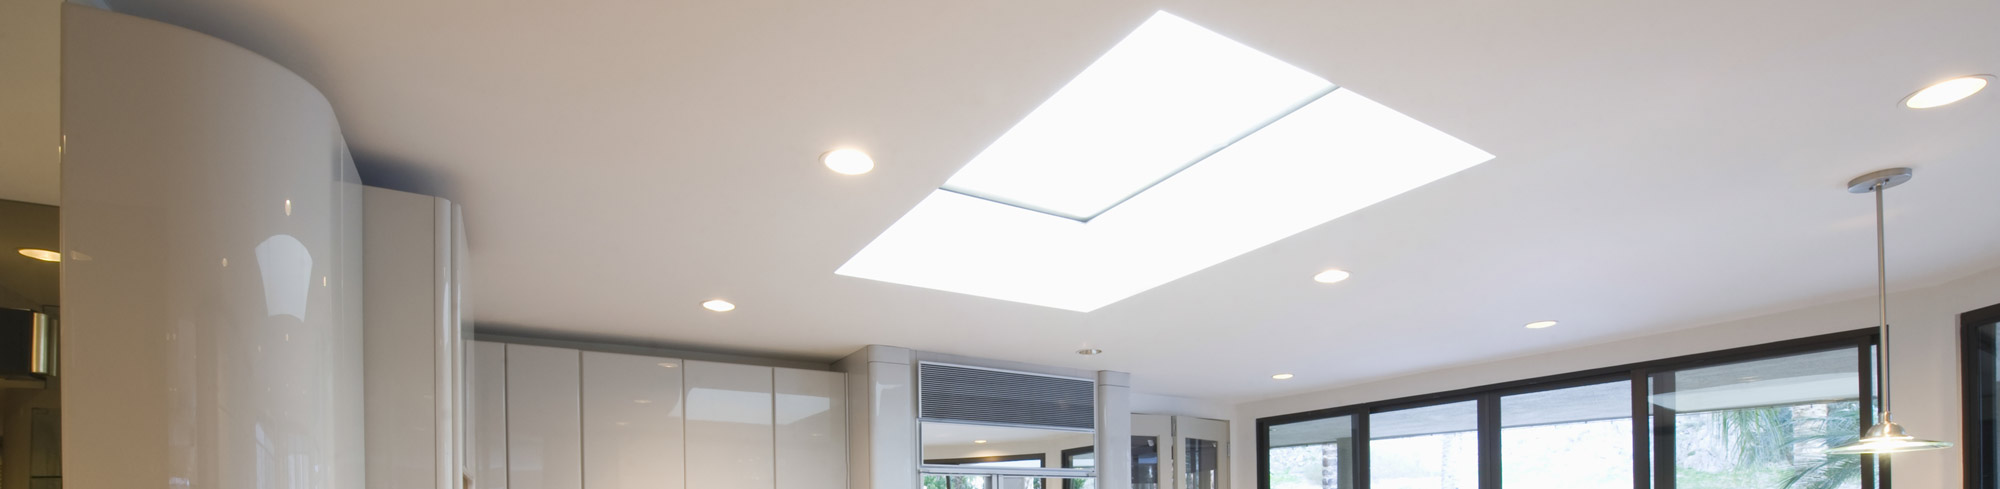 Slider skylight